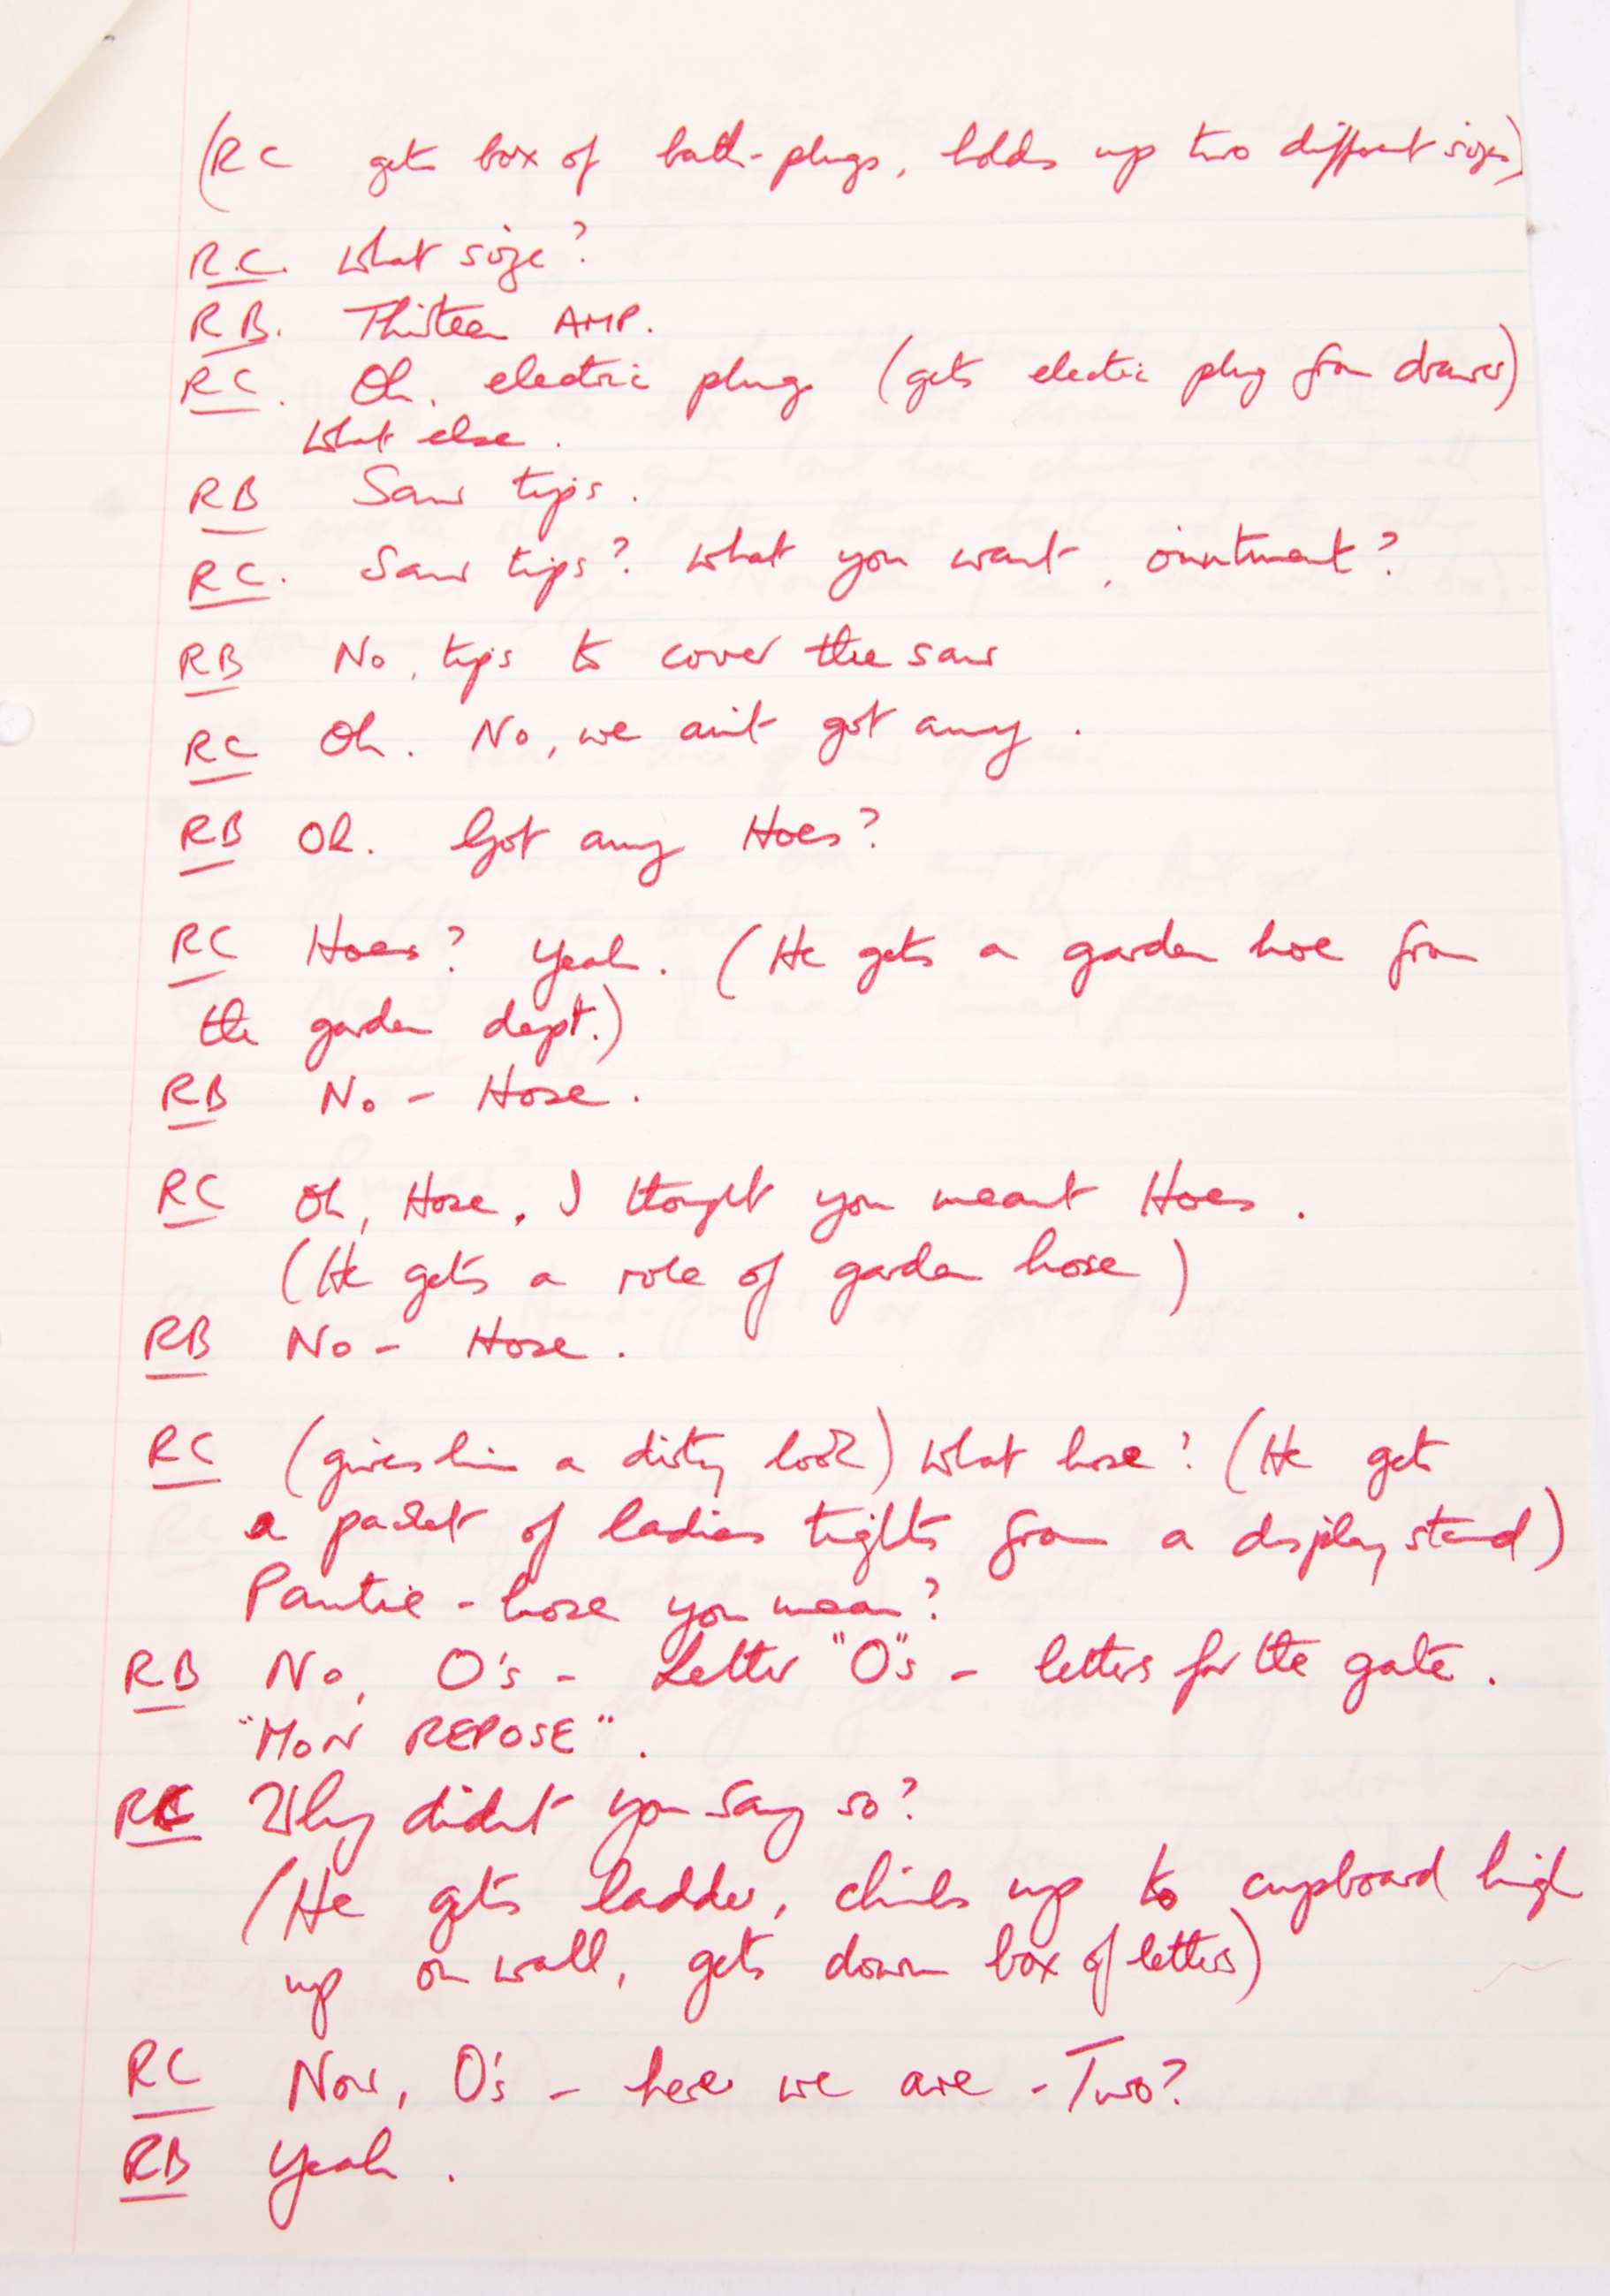 RONNIE BARKER'S HANDWRITTEN TWO RONNIES ' ANNIE FINKHOUSE ' FORK HANDLES SCRIPT - Image 4 of 7